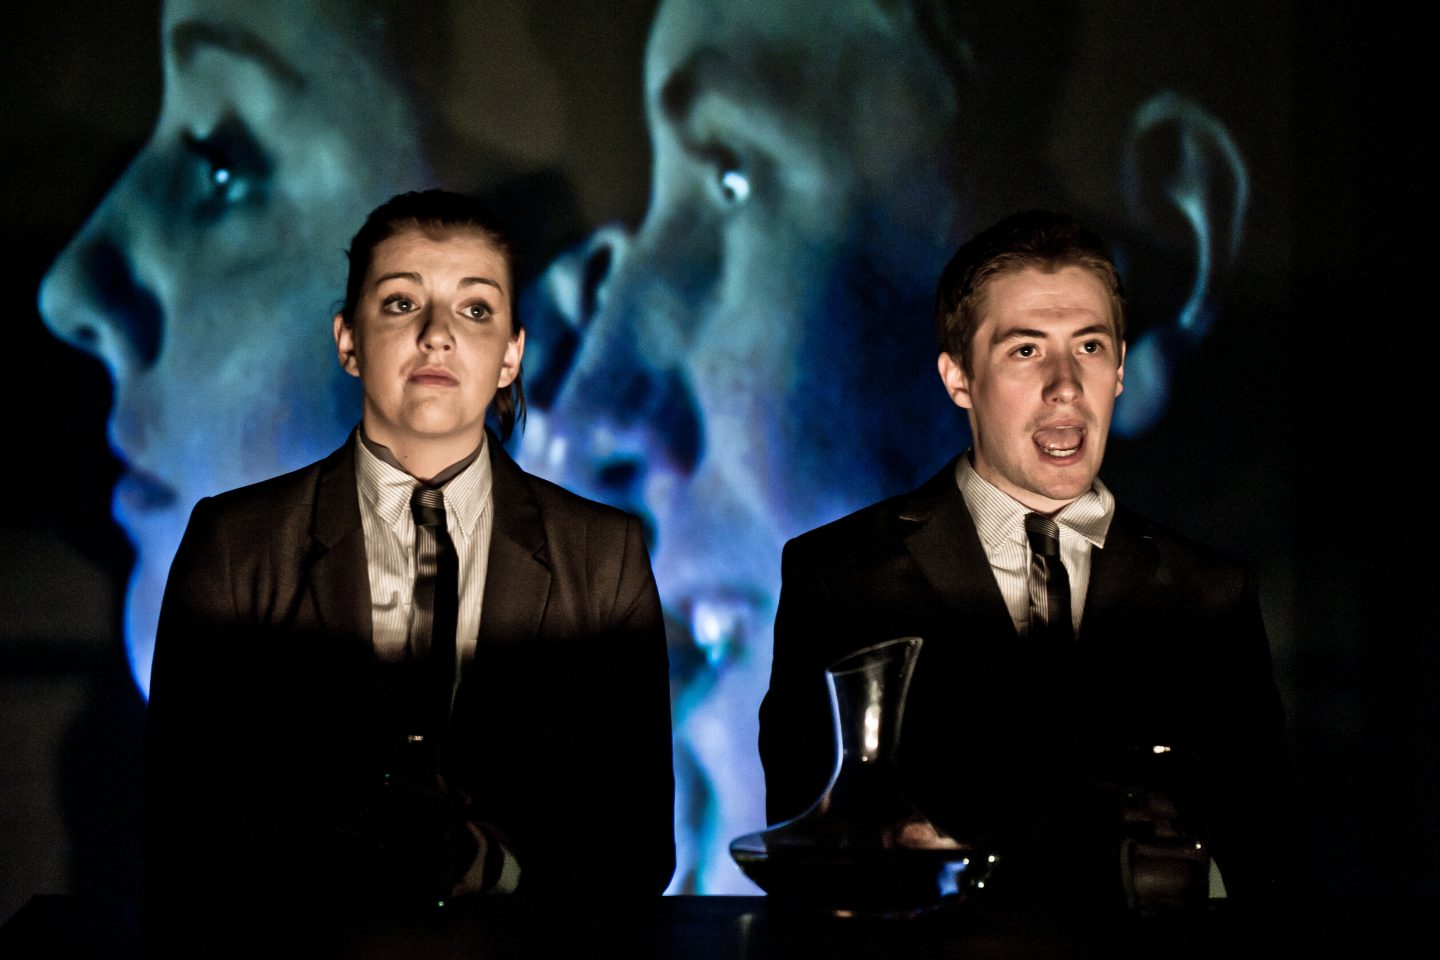 Citizen - two performers in suits and ties at a desk. one is speaking. behind them is projected a giant image of their faces in profile